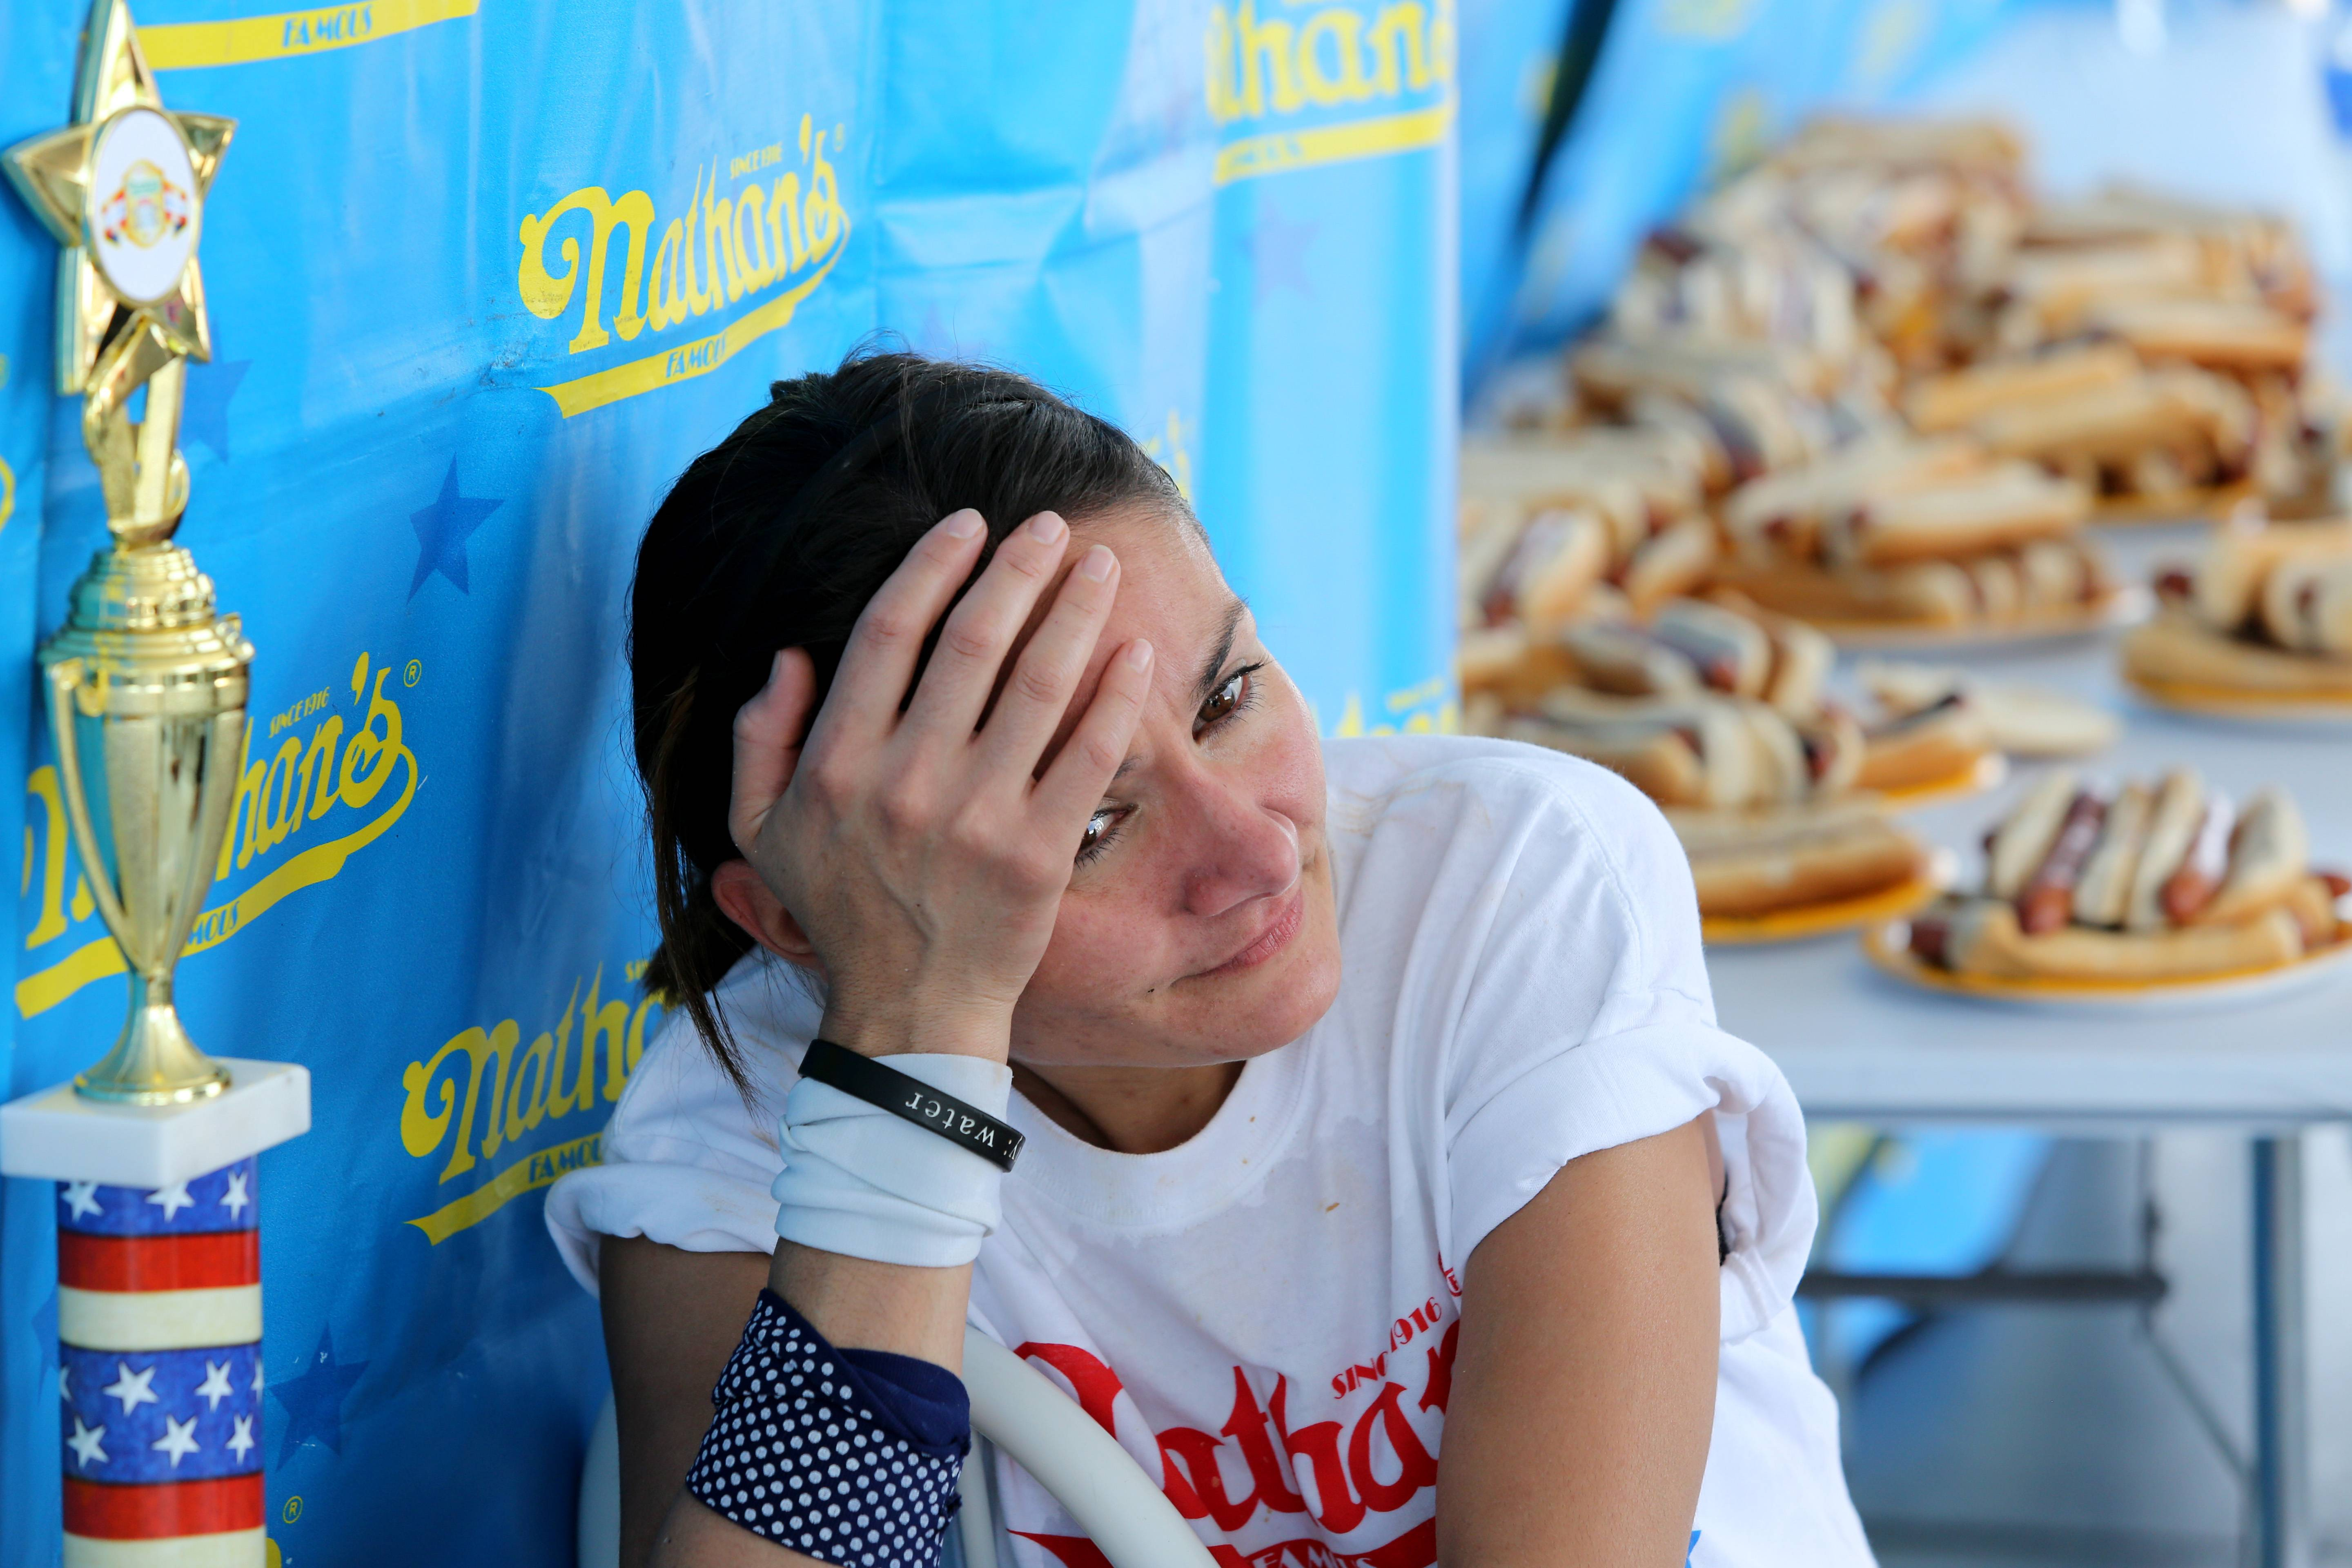 Michelle Lesco of Tucson, Arizona, reflects on her first-place win during a hot dog-eating contest in the Bloomingdale Kmart parking lot.